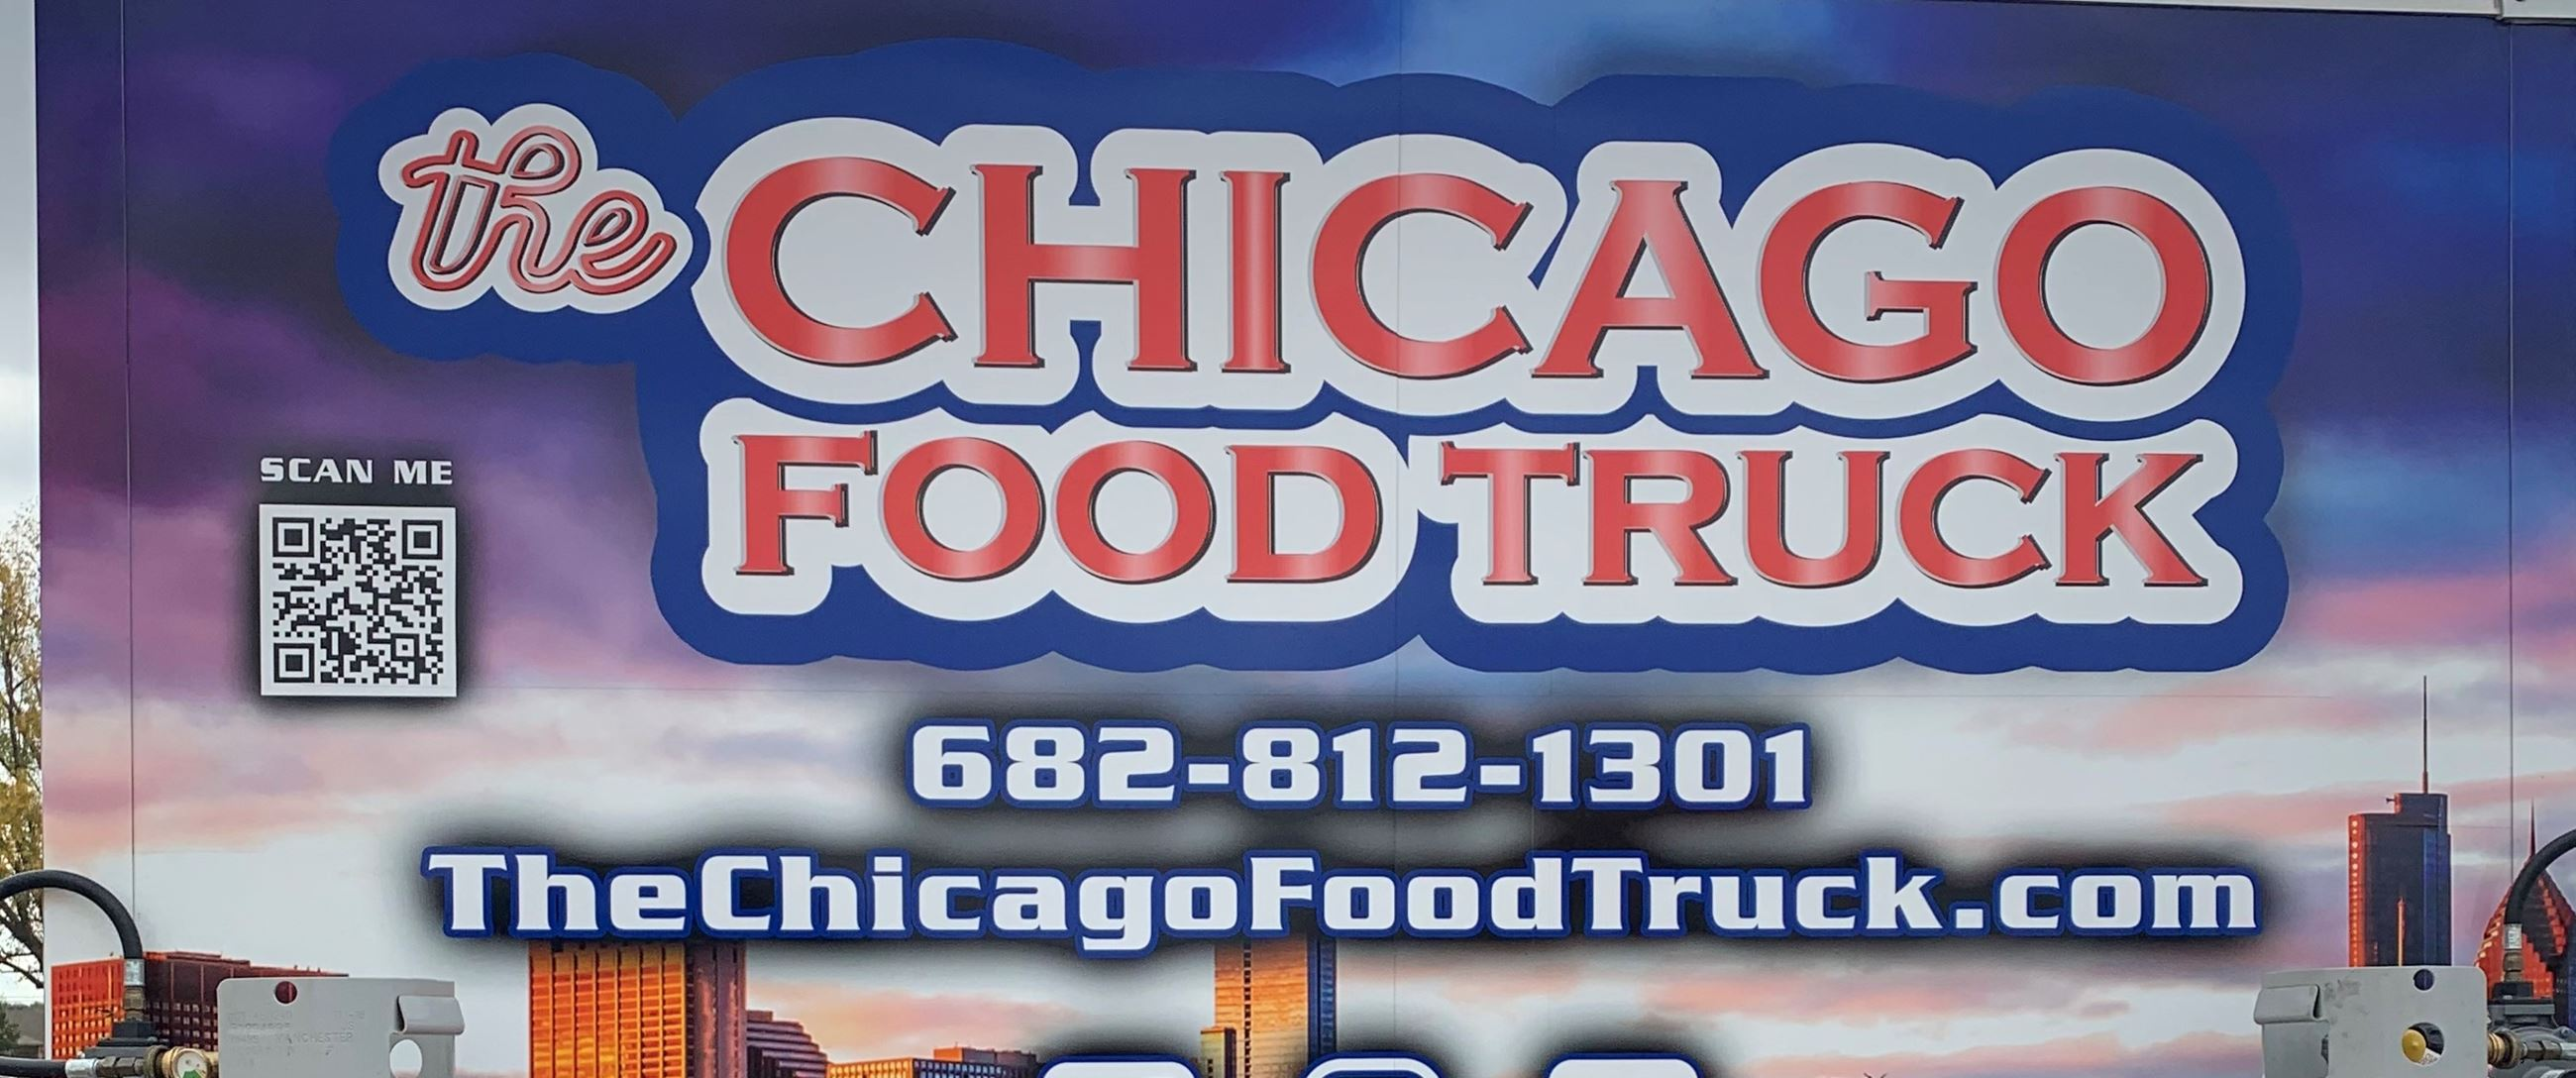 The Chicago Food Truck